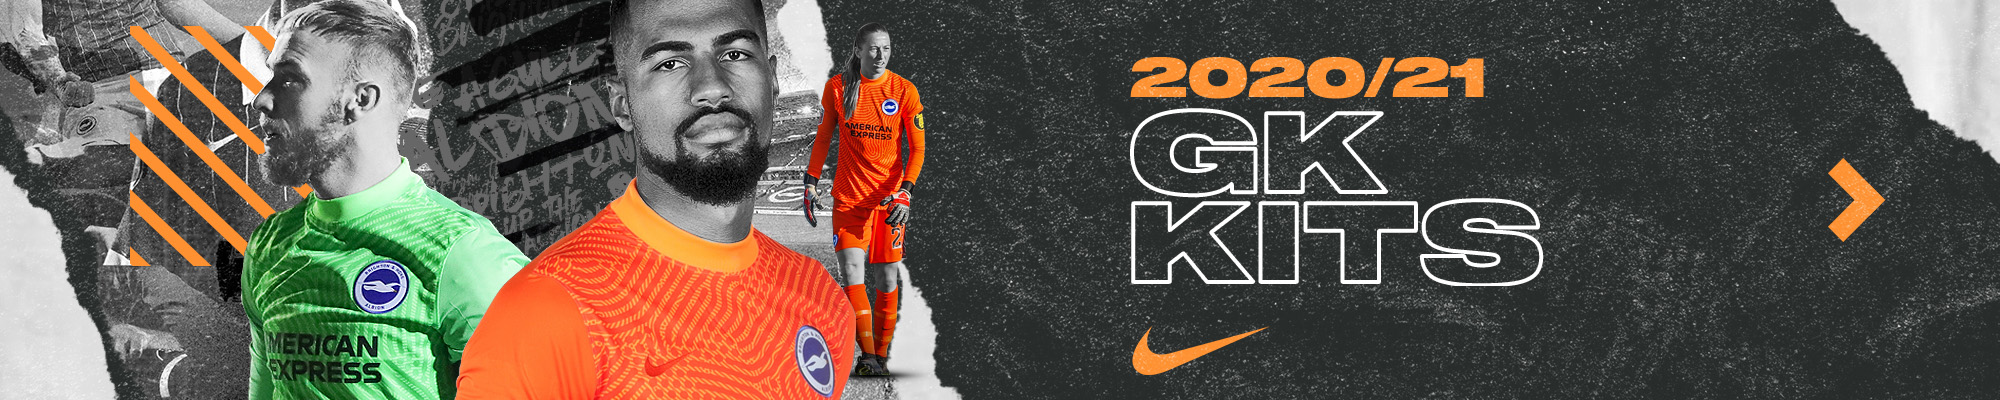 2020/21 Goalkeeper Kit